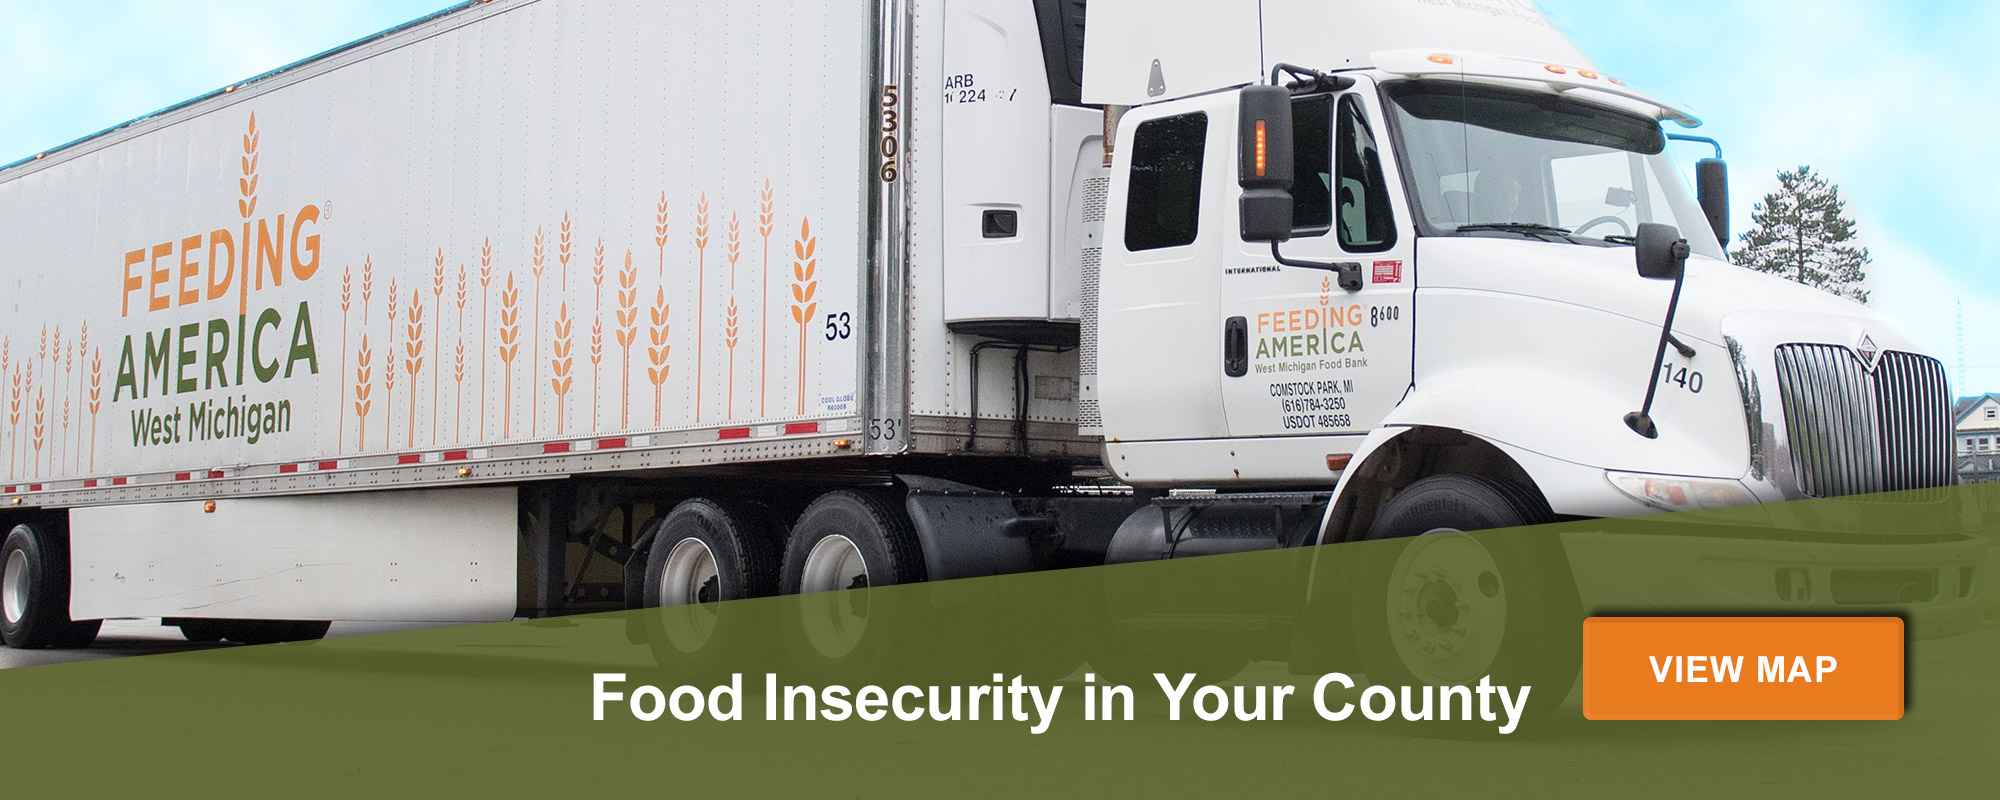 Food Security in Your County. View Map.